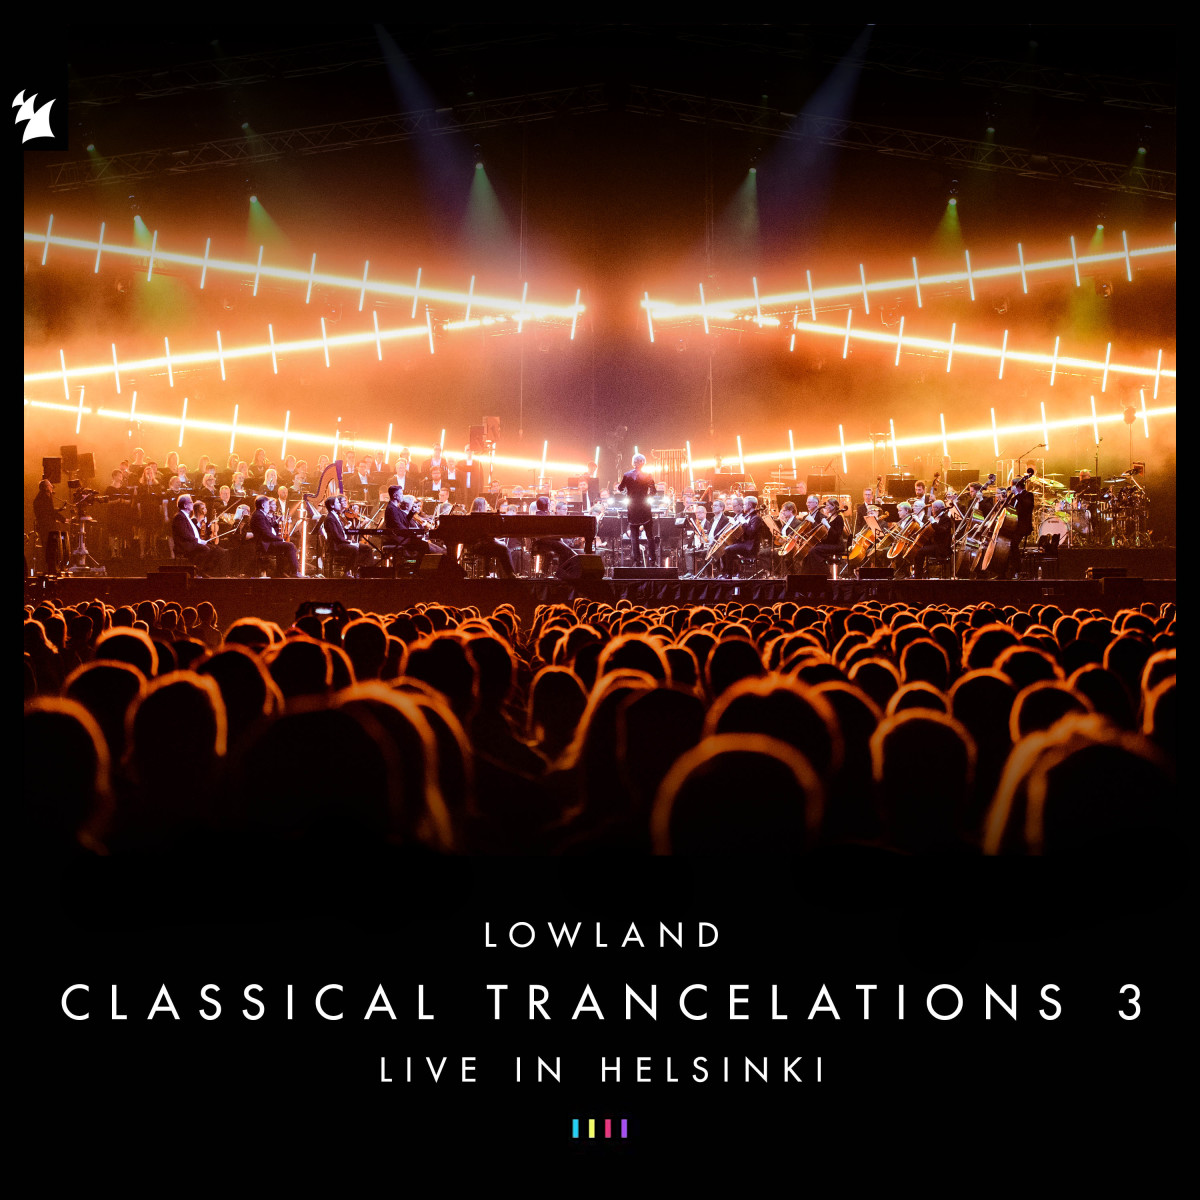 Lowland Classical Trancelations 3